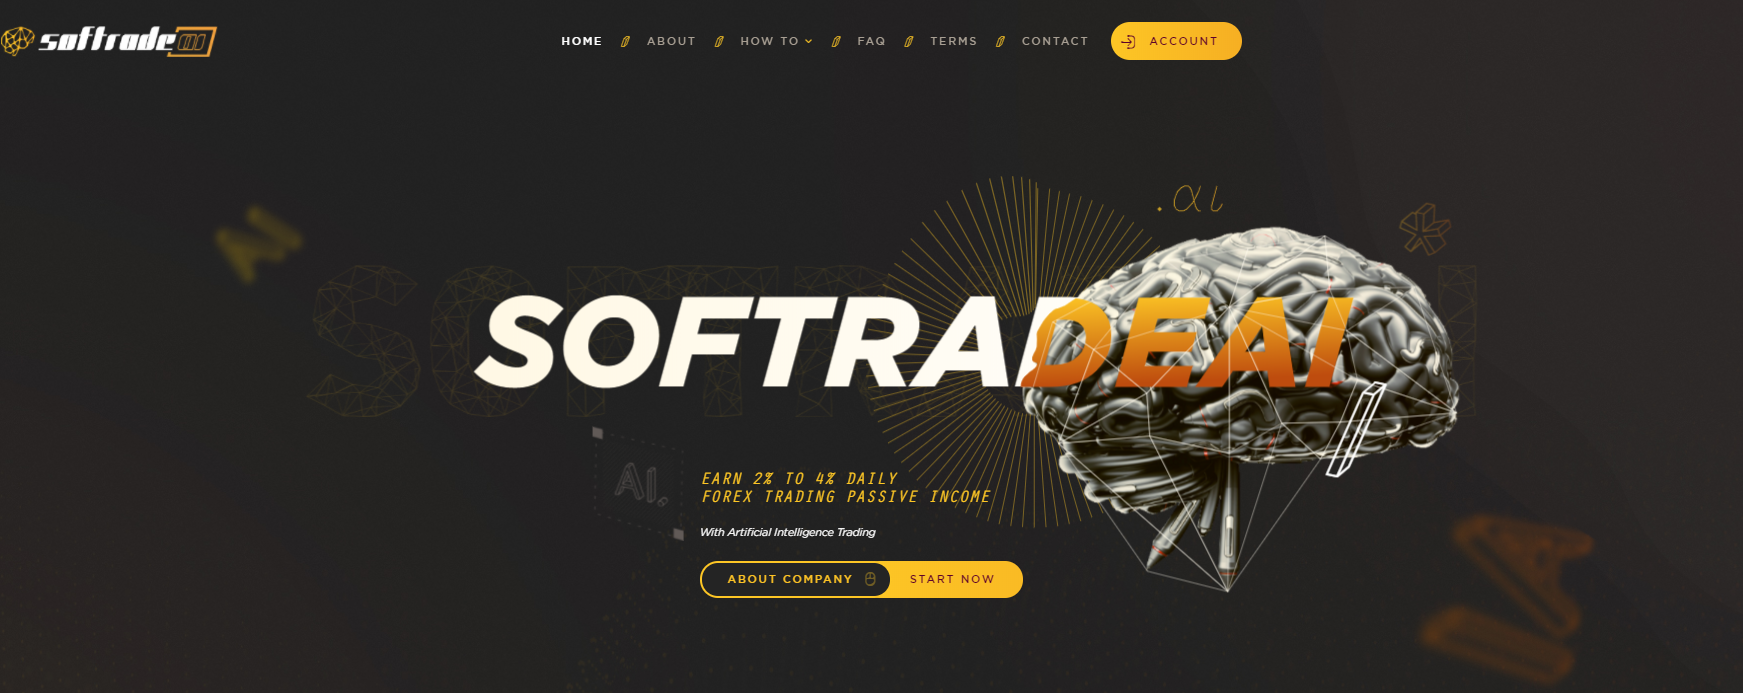 SoftTradeAi.com review